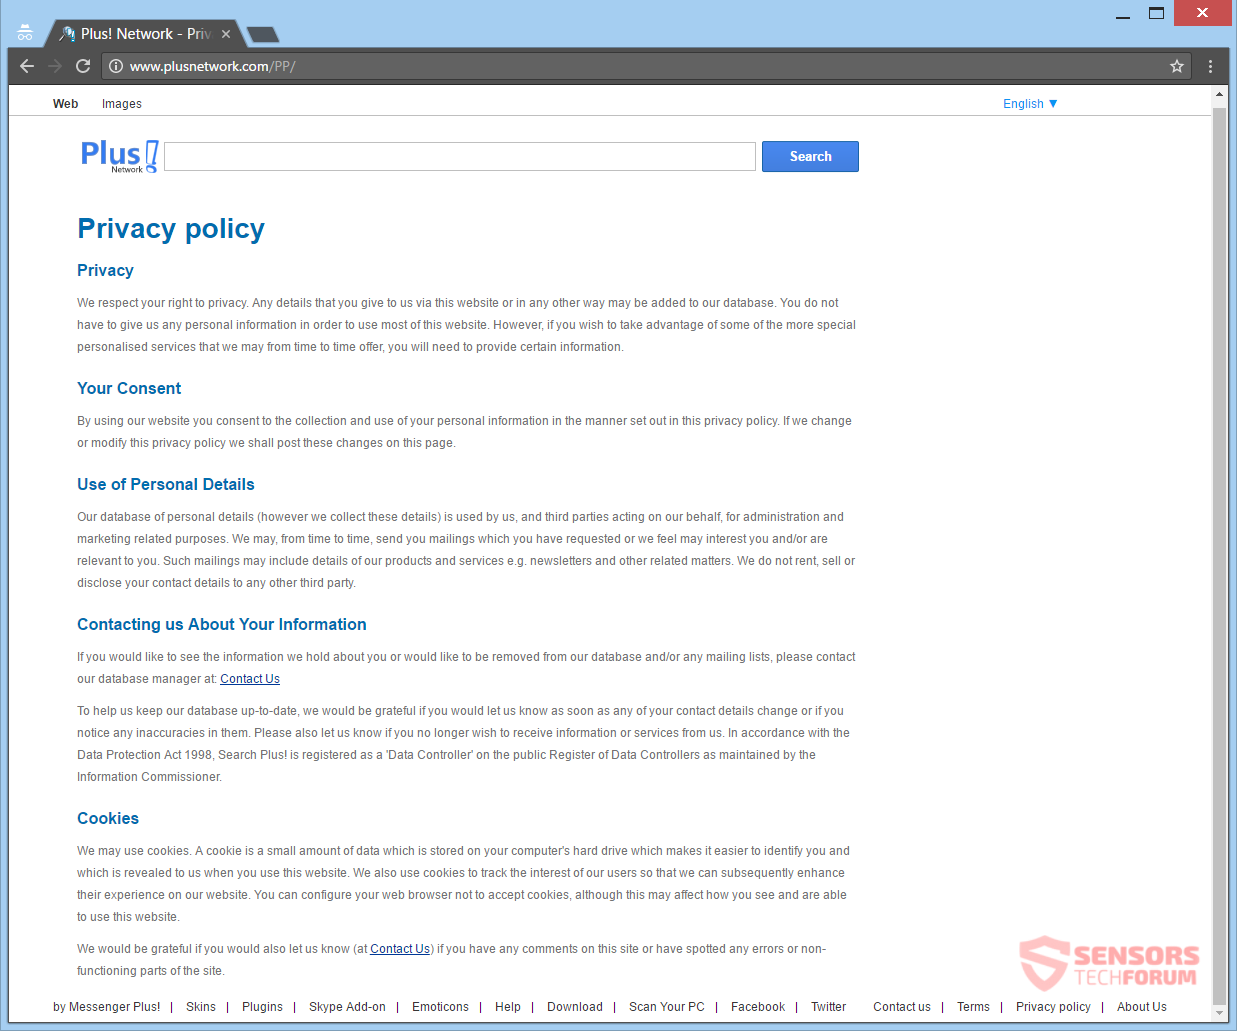 stf-web-start-org-browser-hijacker-redirect-plus-network-privacy-policy